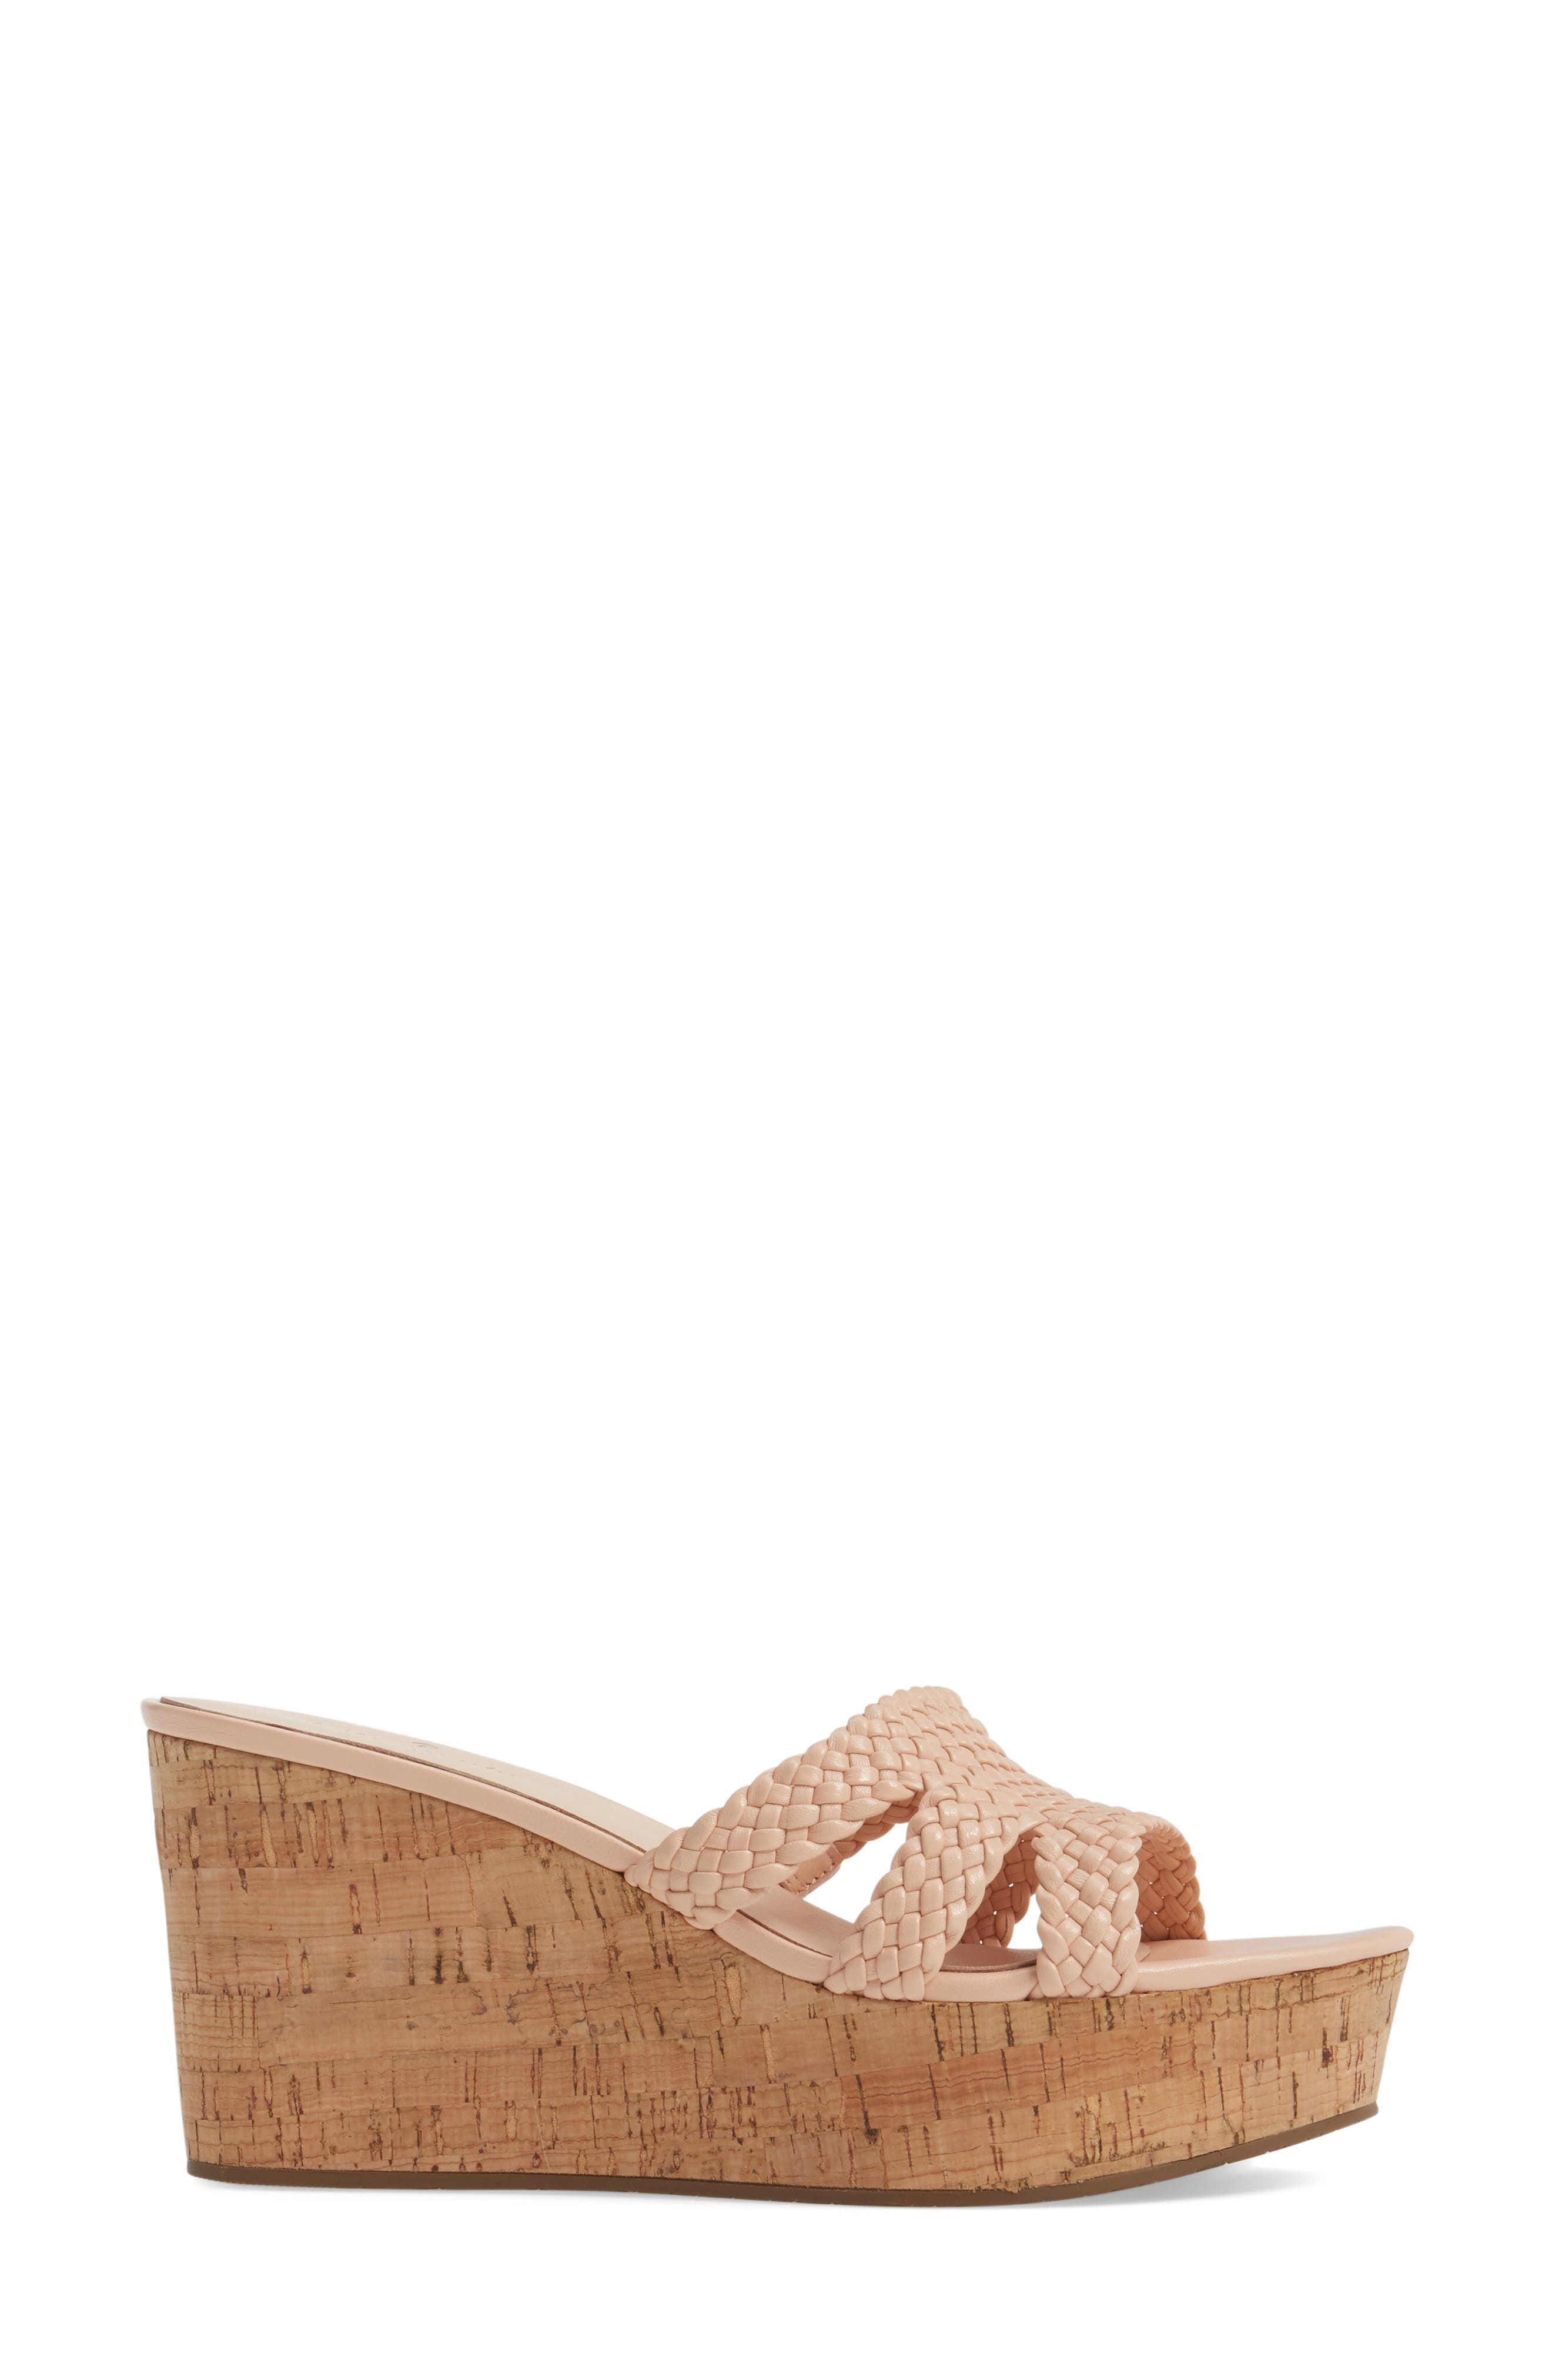 tarvela wedge sandal,                             Alternate thumbnail 3, color,                             661